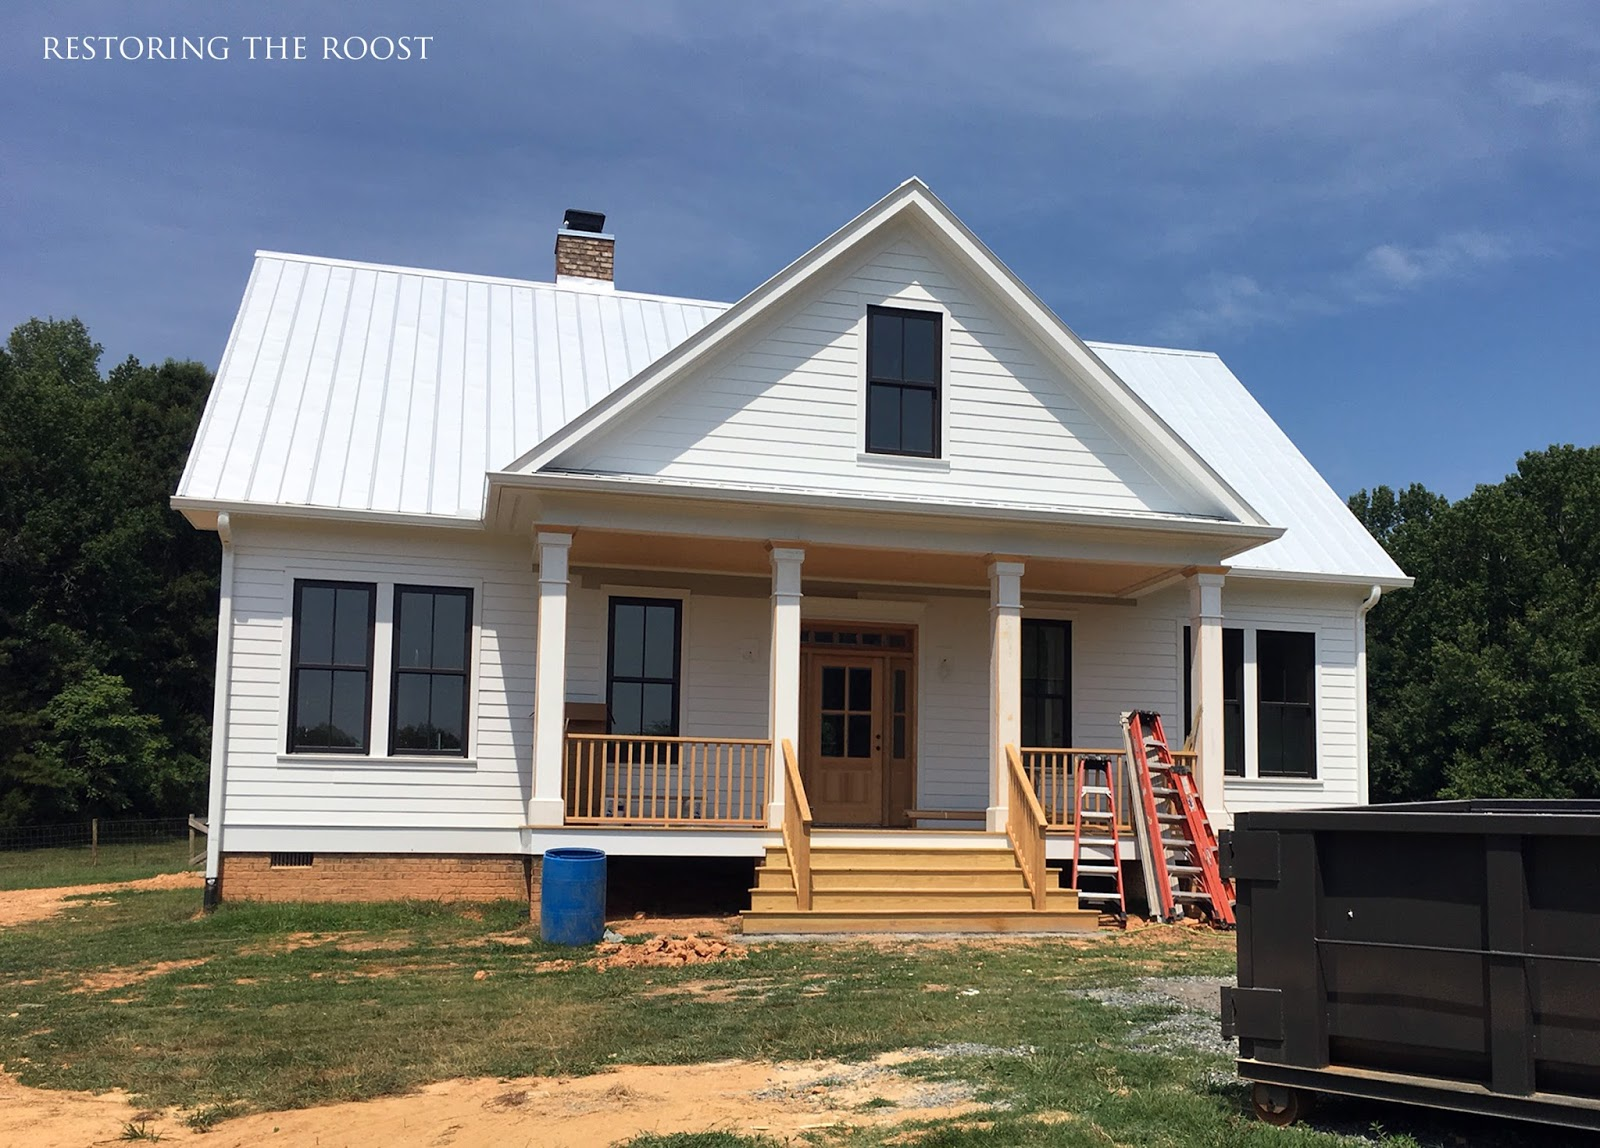 Restoring the roost how we cut costs in our farmhouse build for Cost to build farmhouse